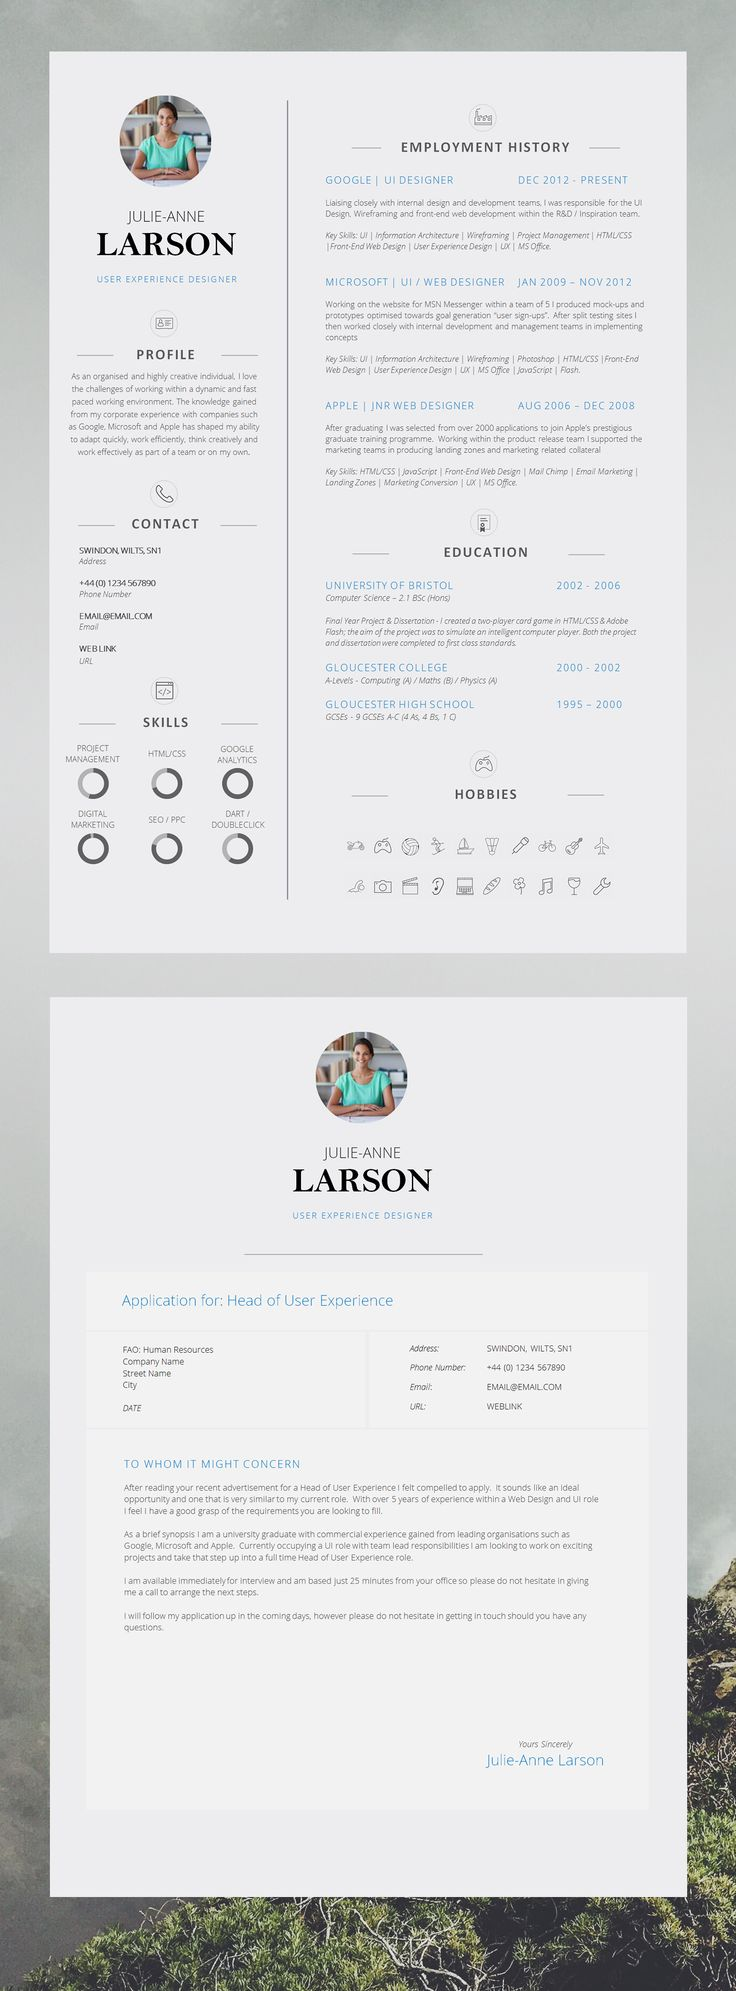 best ideas about creative cv template creative resume template cv template cover letter application advice ms word resume design cv design instant belgravia